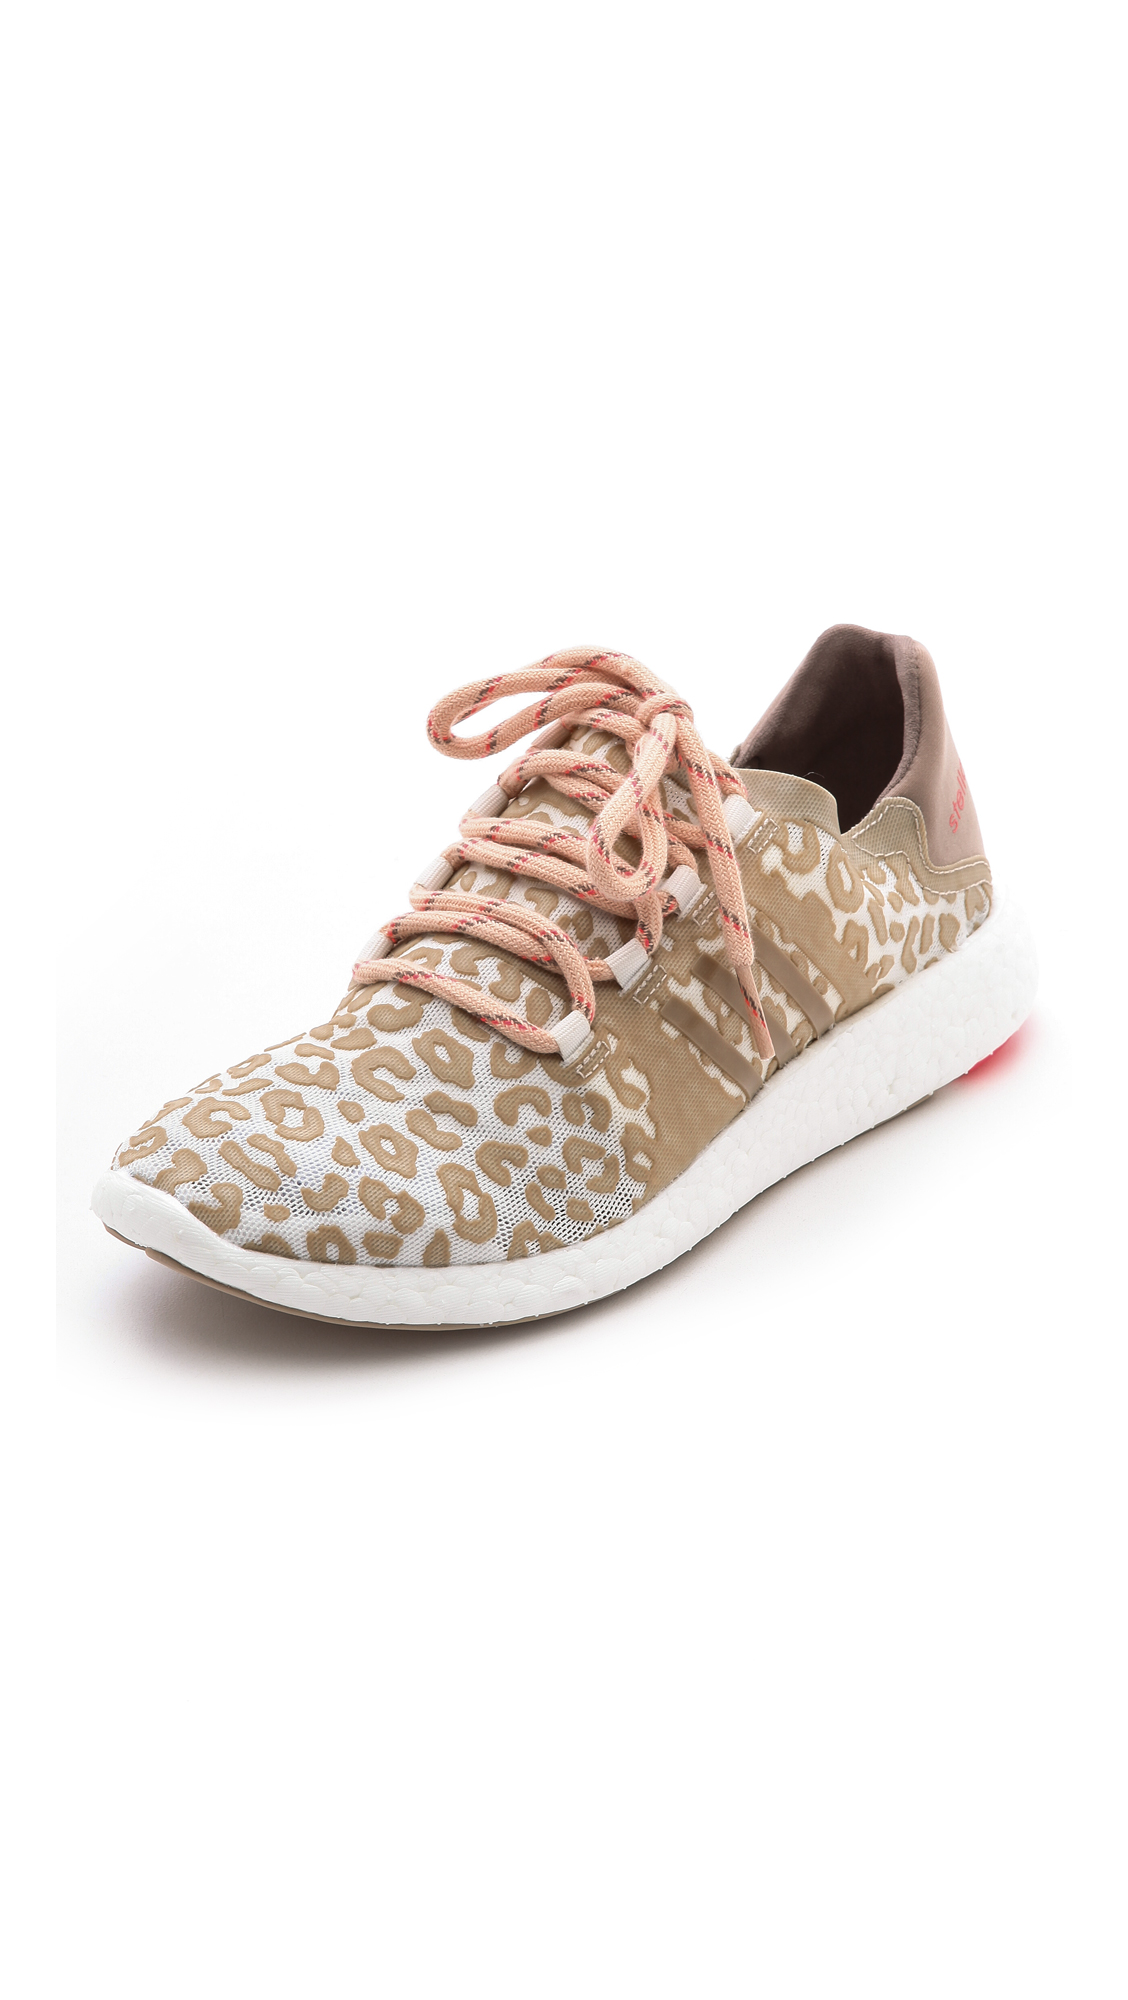 huge selection of 2772a 8d086 adidas by Stella McCartney Pure Boost Sneakers   SHOPBOP